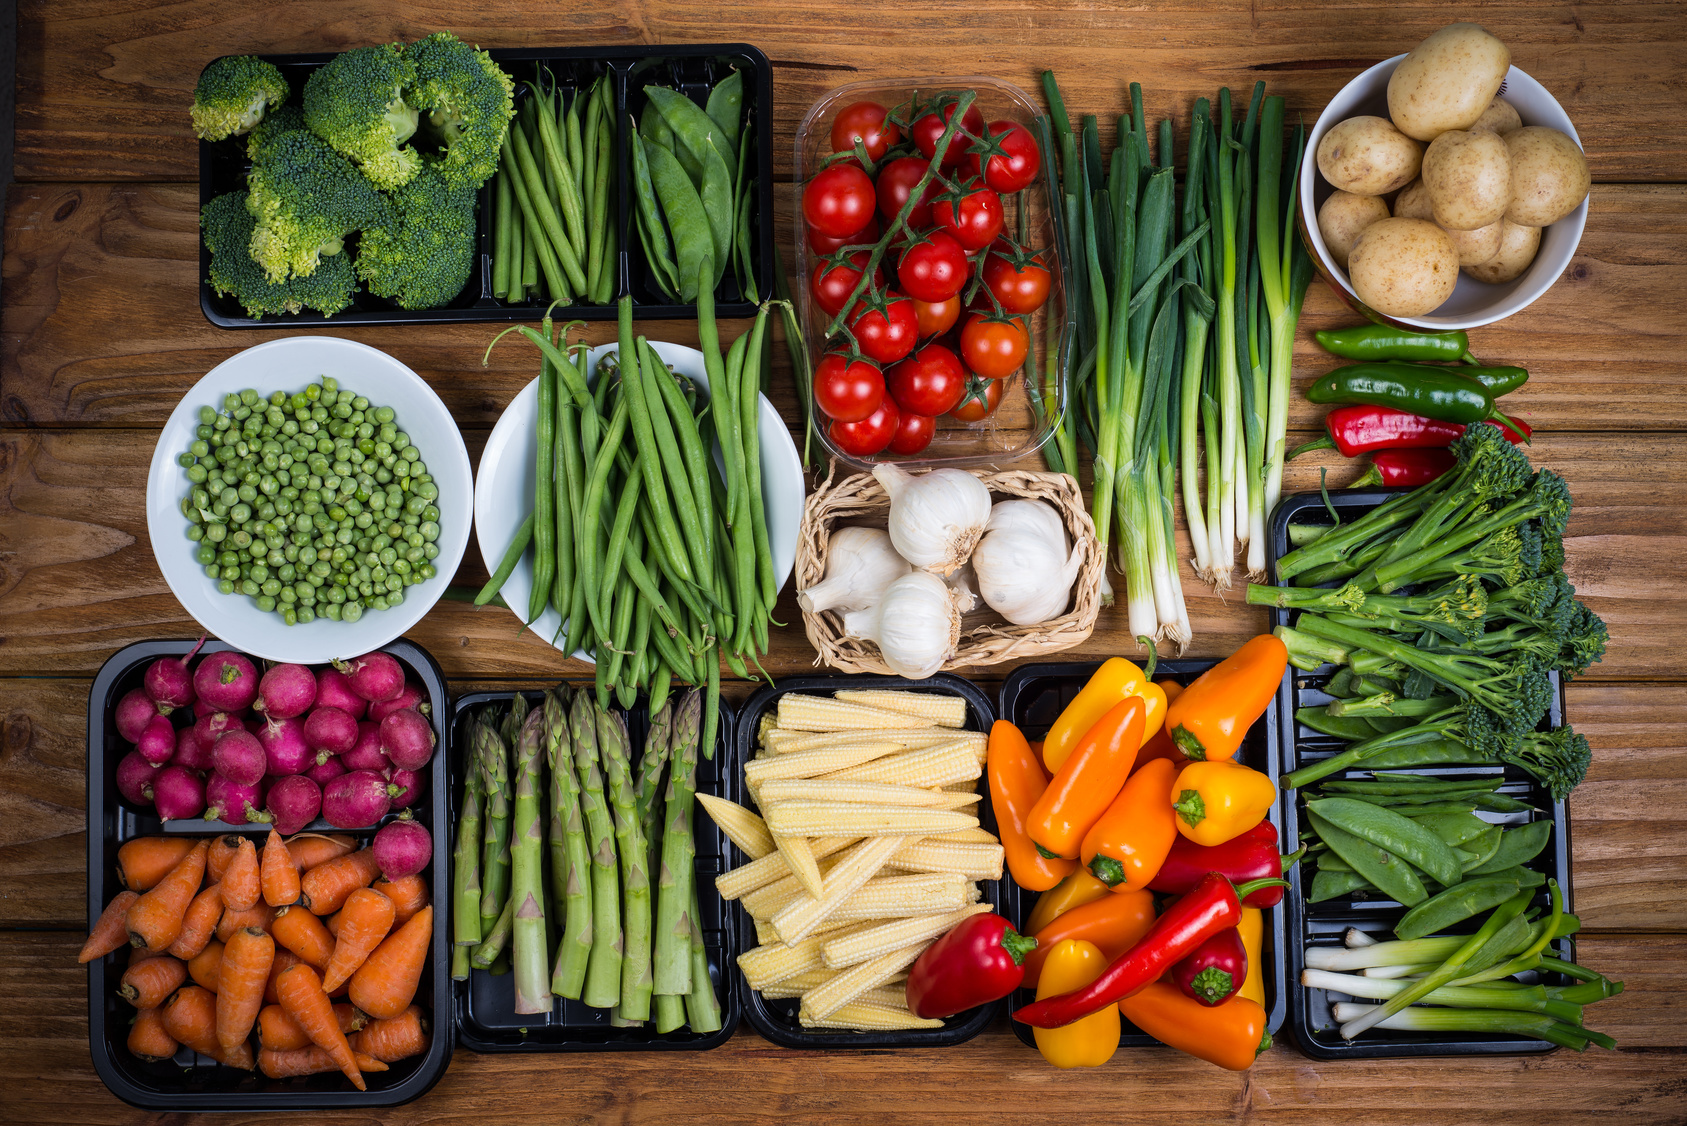 A variety of flourishing vegetables for a whole-food, plant-based menu.